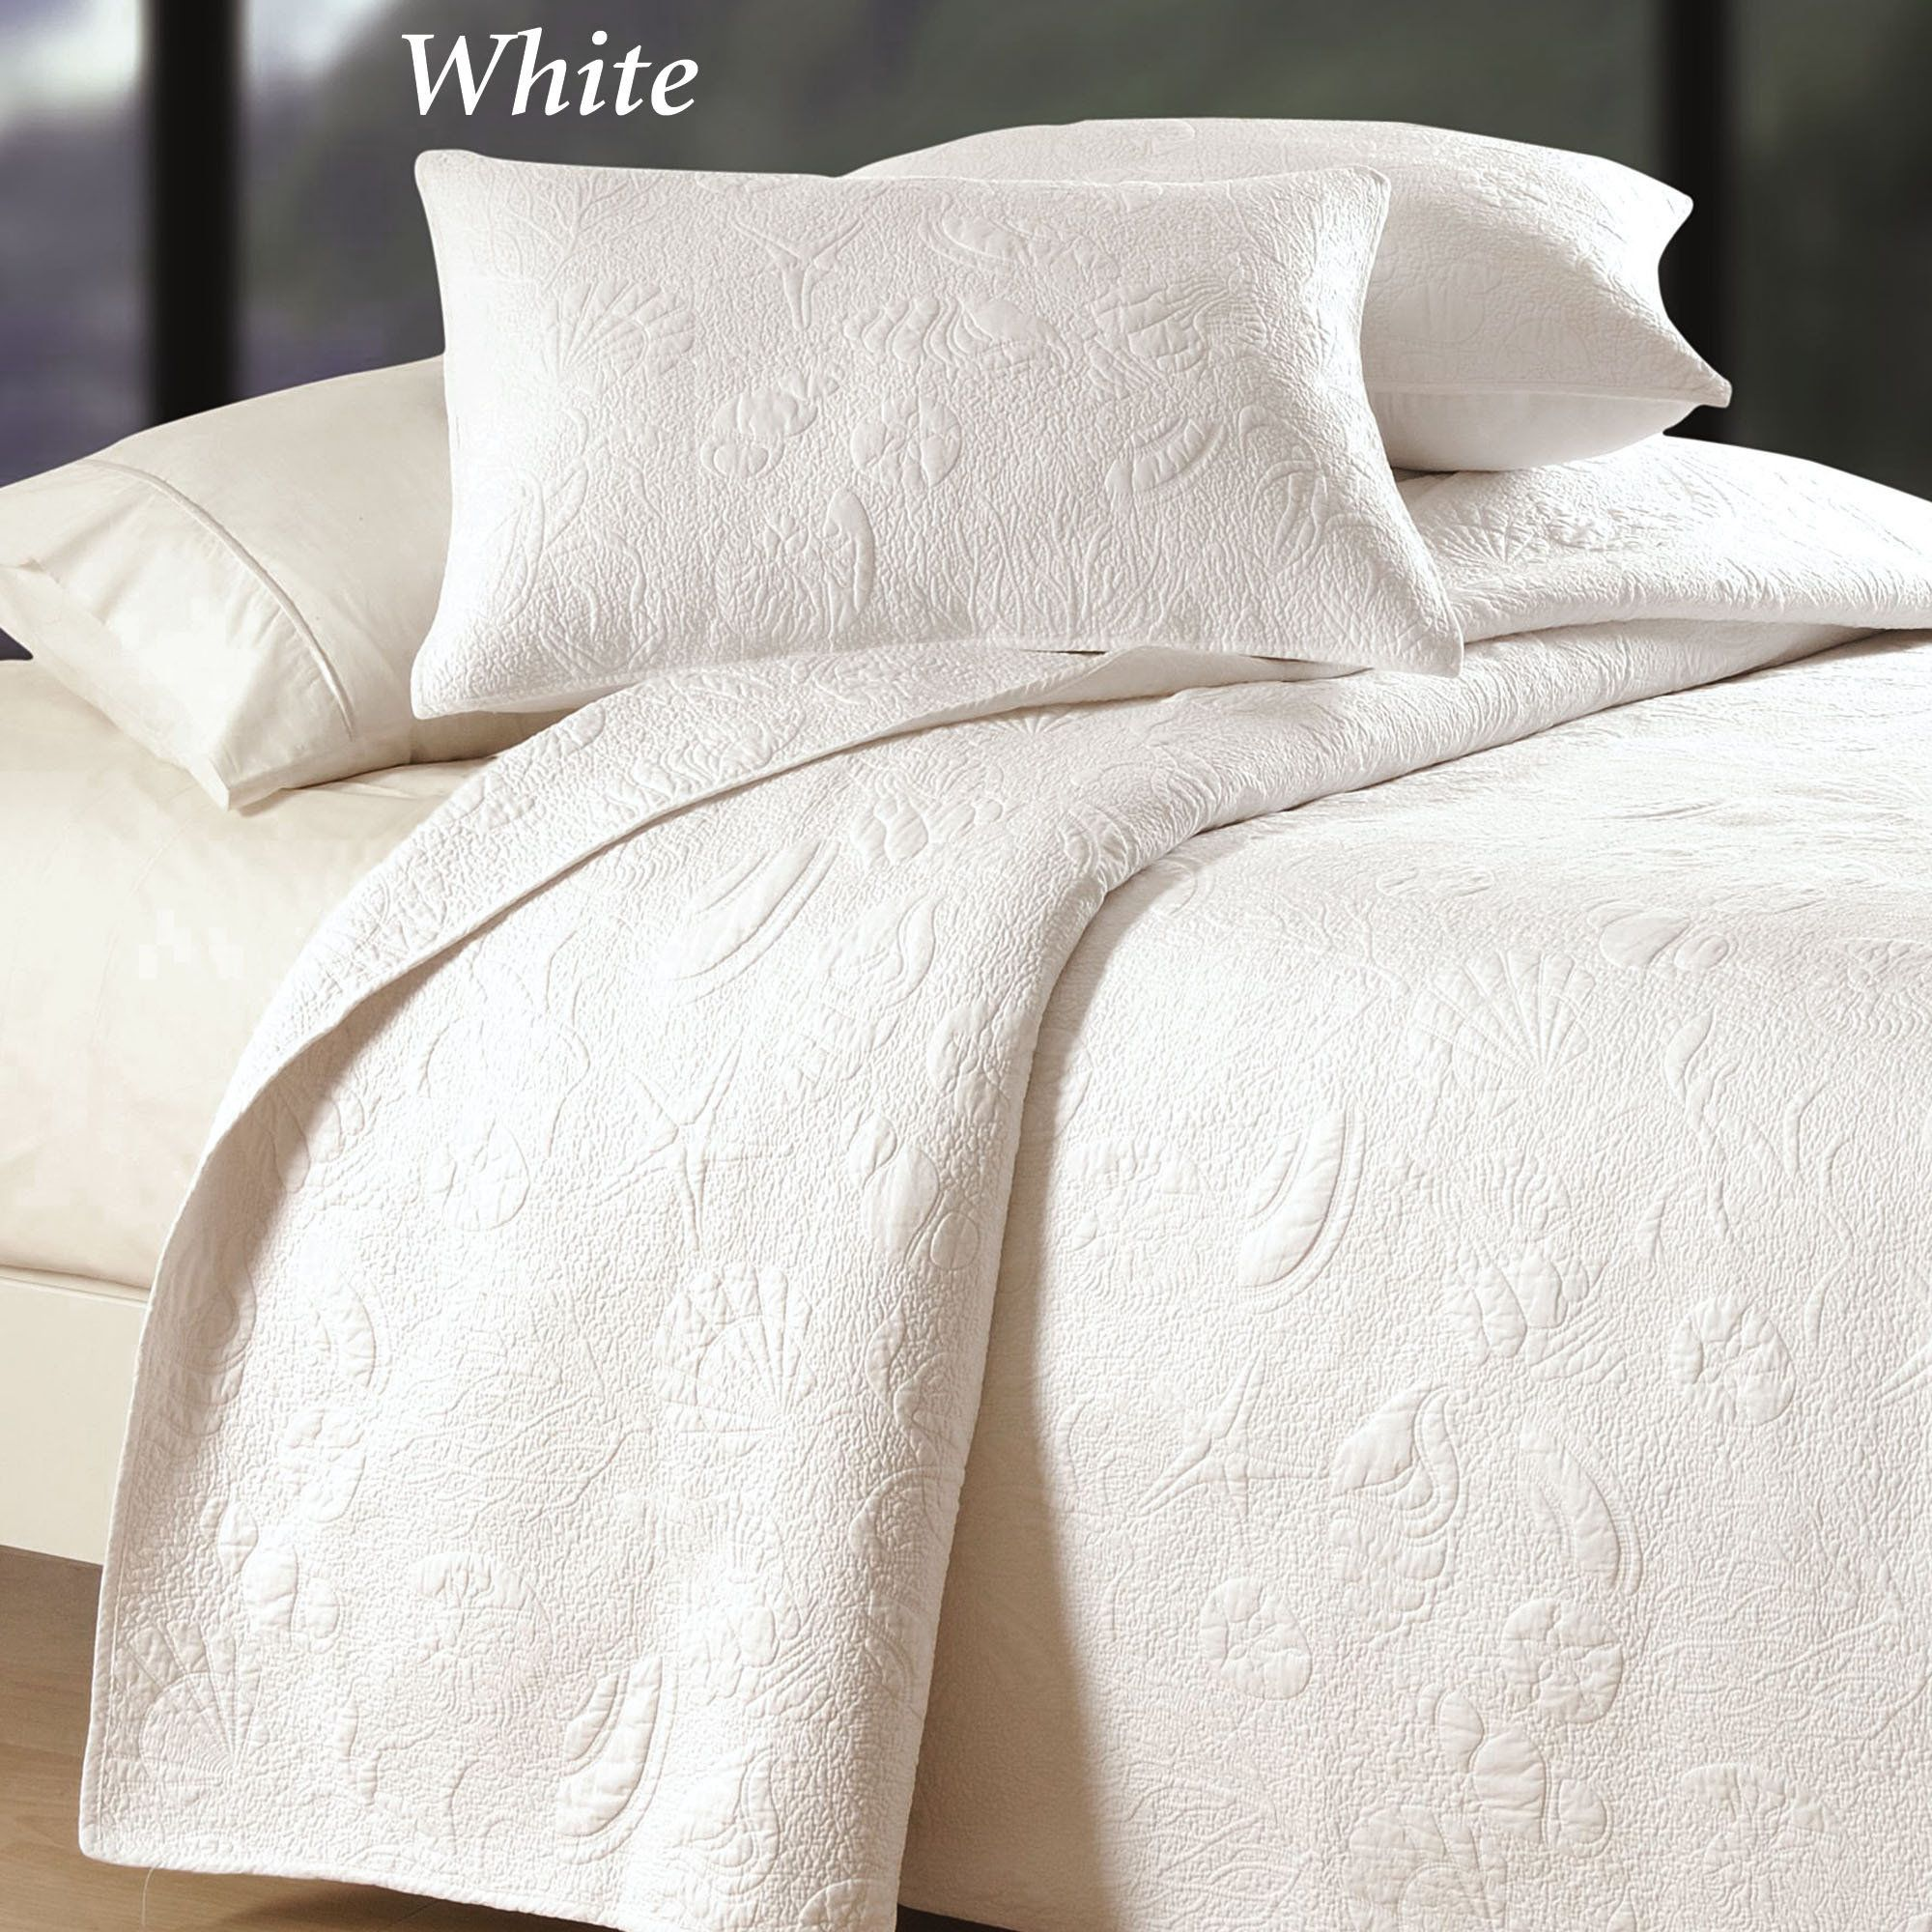 hotels wholesale bed matelasse supplies collections linens diamond coverlet resort bedding b inns category